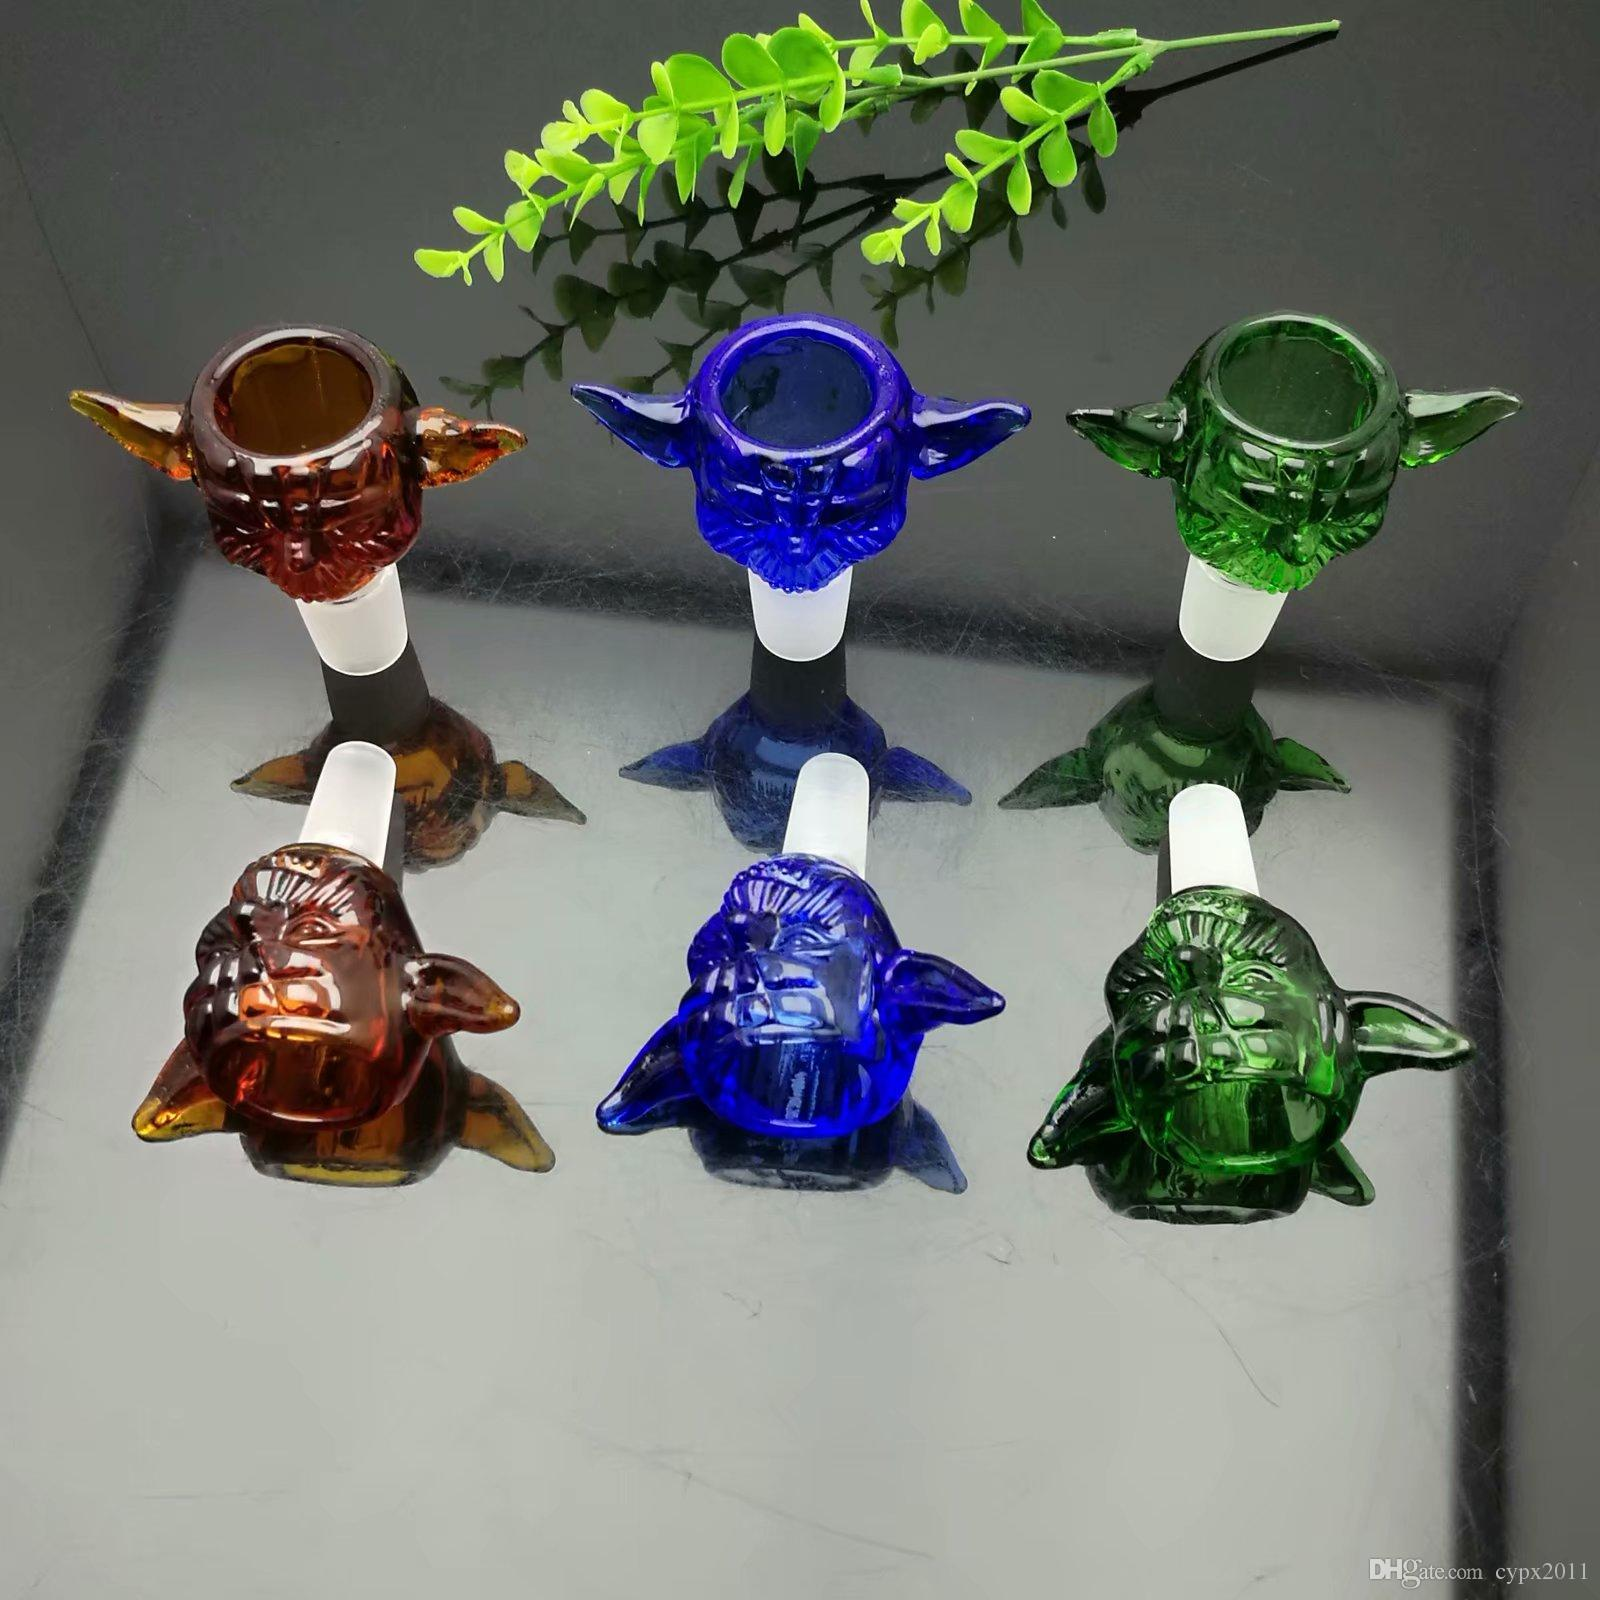 Color Wing Glass Bubble Head Converter 14mm Wholesale Bongs Oil Burner Pipes Water Pipes Glass Pipe Oil Rigs Smoking